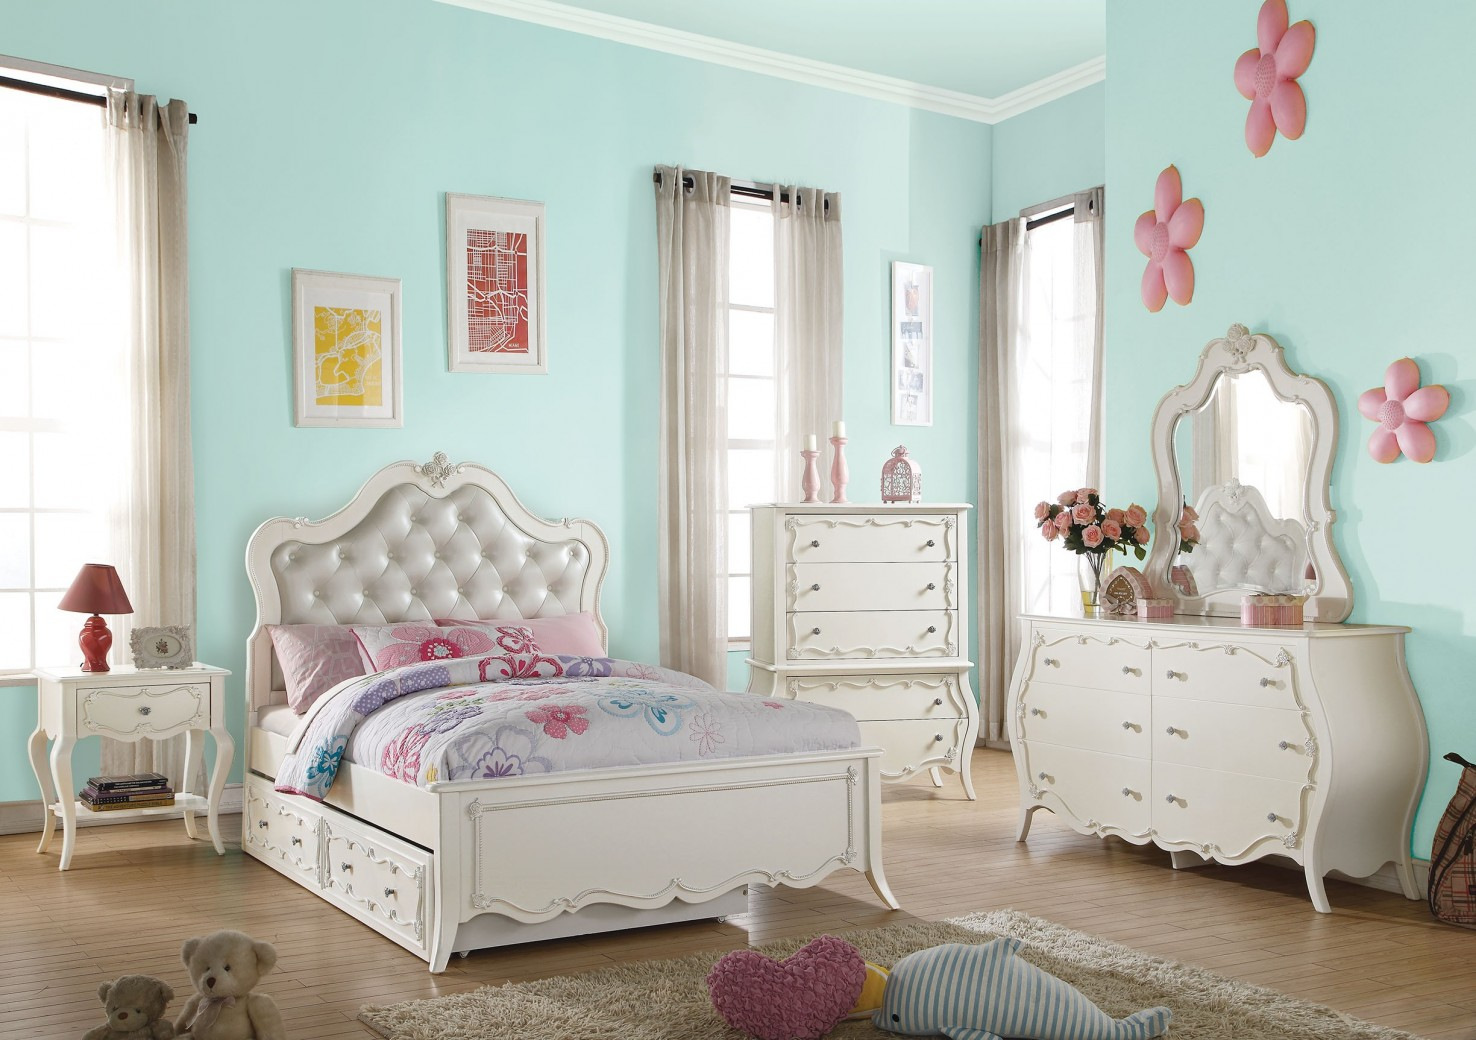 30505 edalene youth bedroom set collection victorian style 13894 | 30505 edalene youth bedroom set collection victorian style pearl white finish